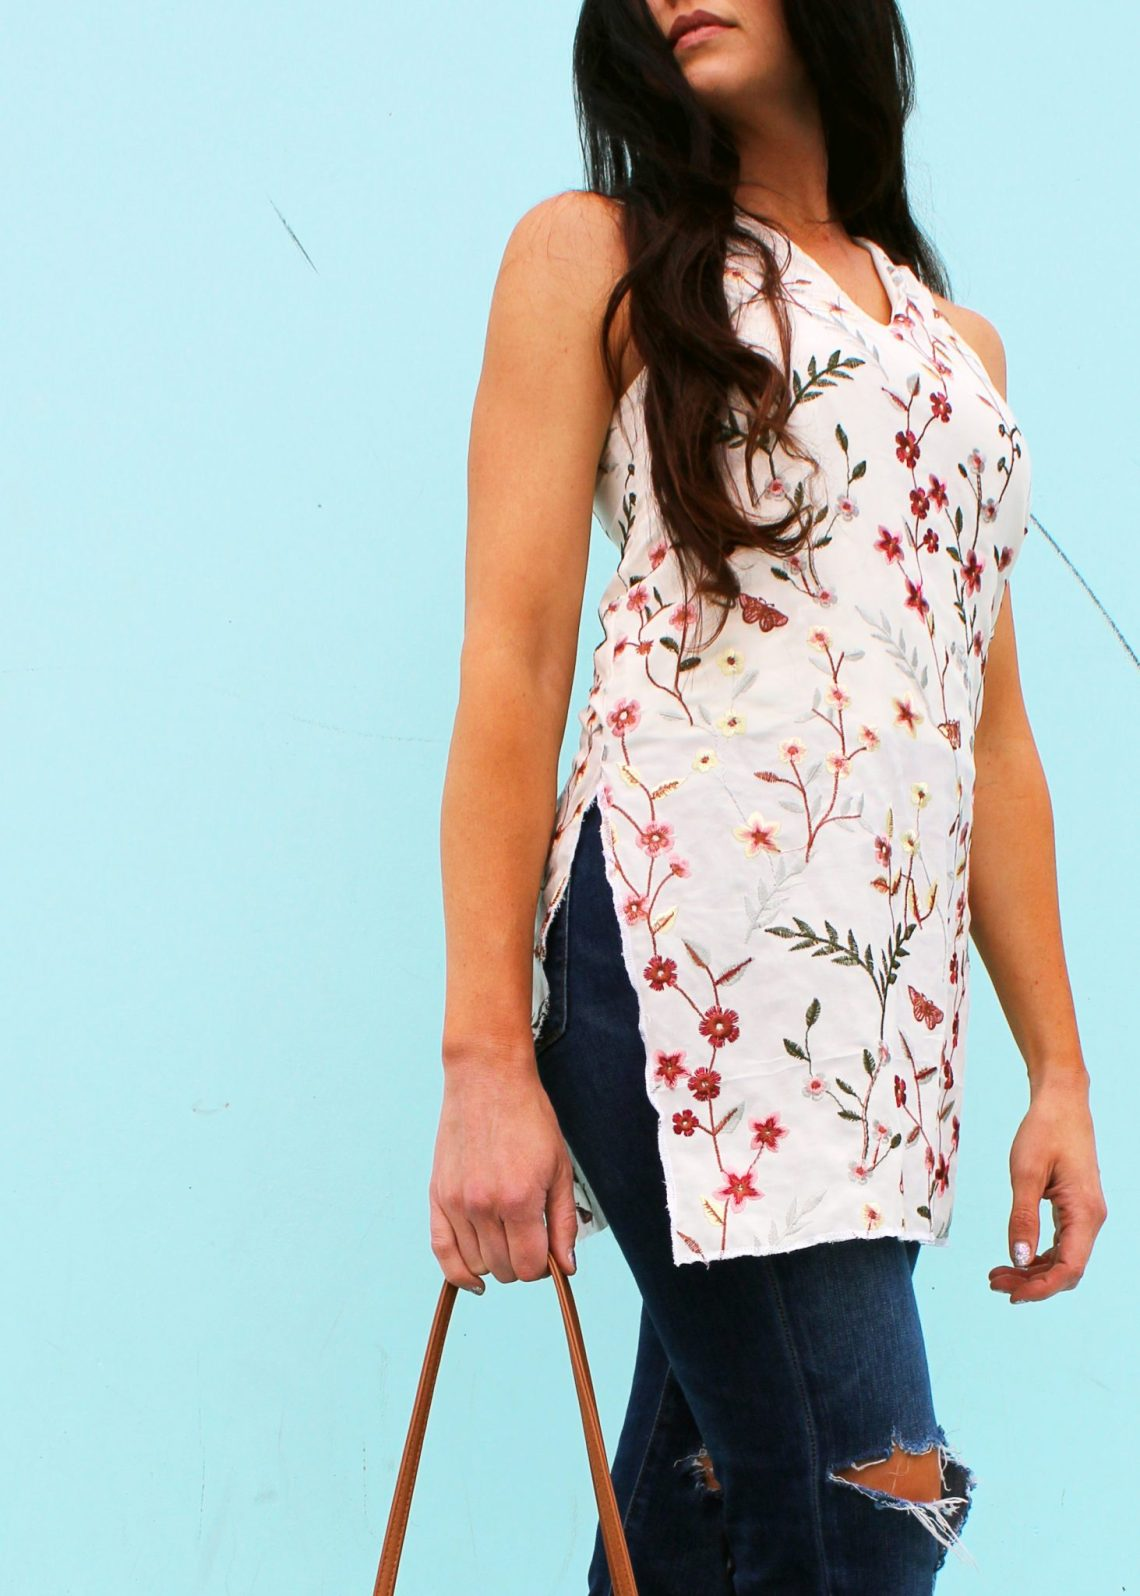 DIY floral tunic dress for summer . an easy beginner sewing project